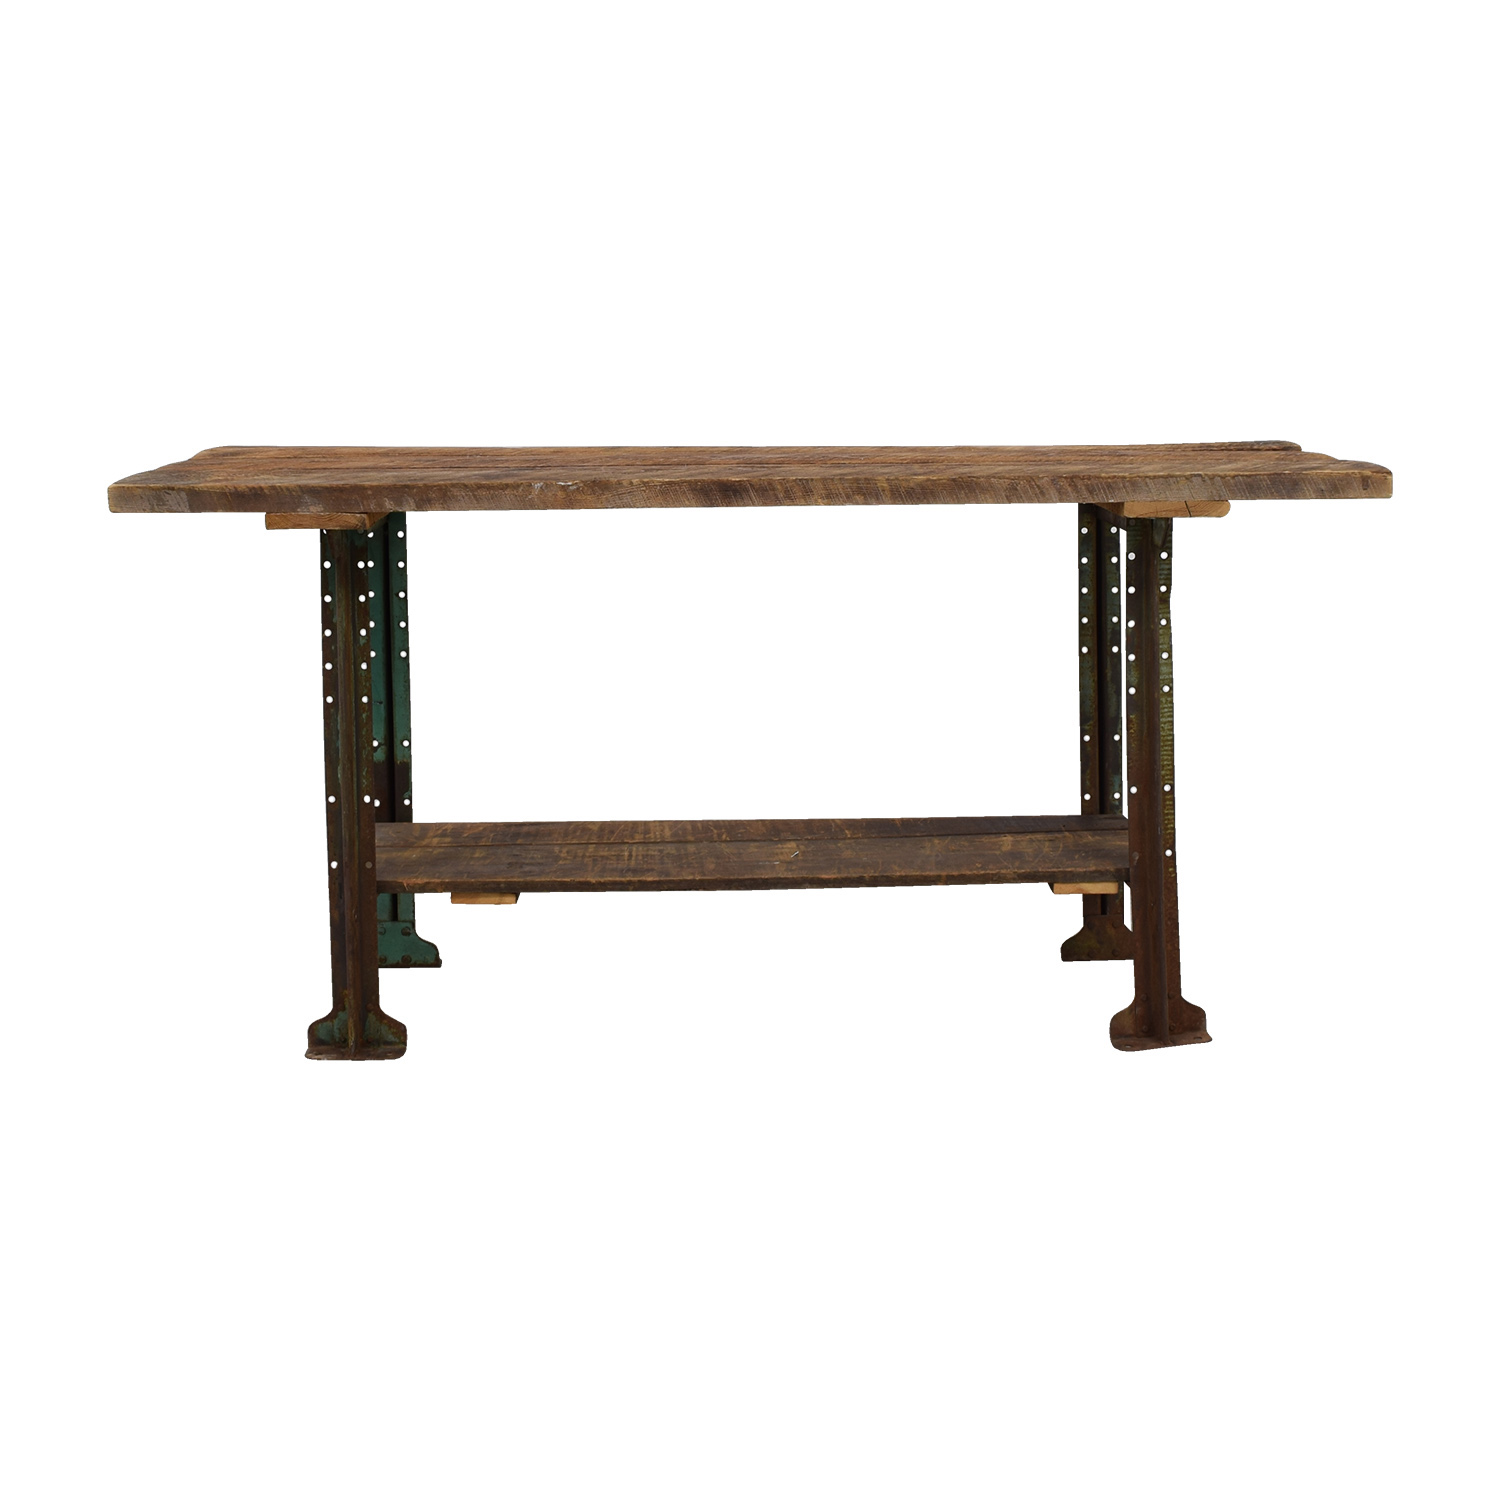 buy Brooklyn Flea Market Rustic Reclaimed Wood Table Brooklyn Flea Market Dinner Tables